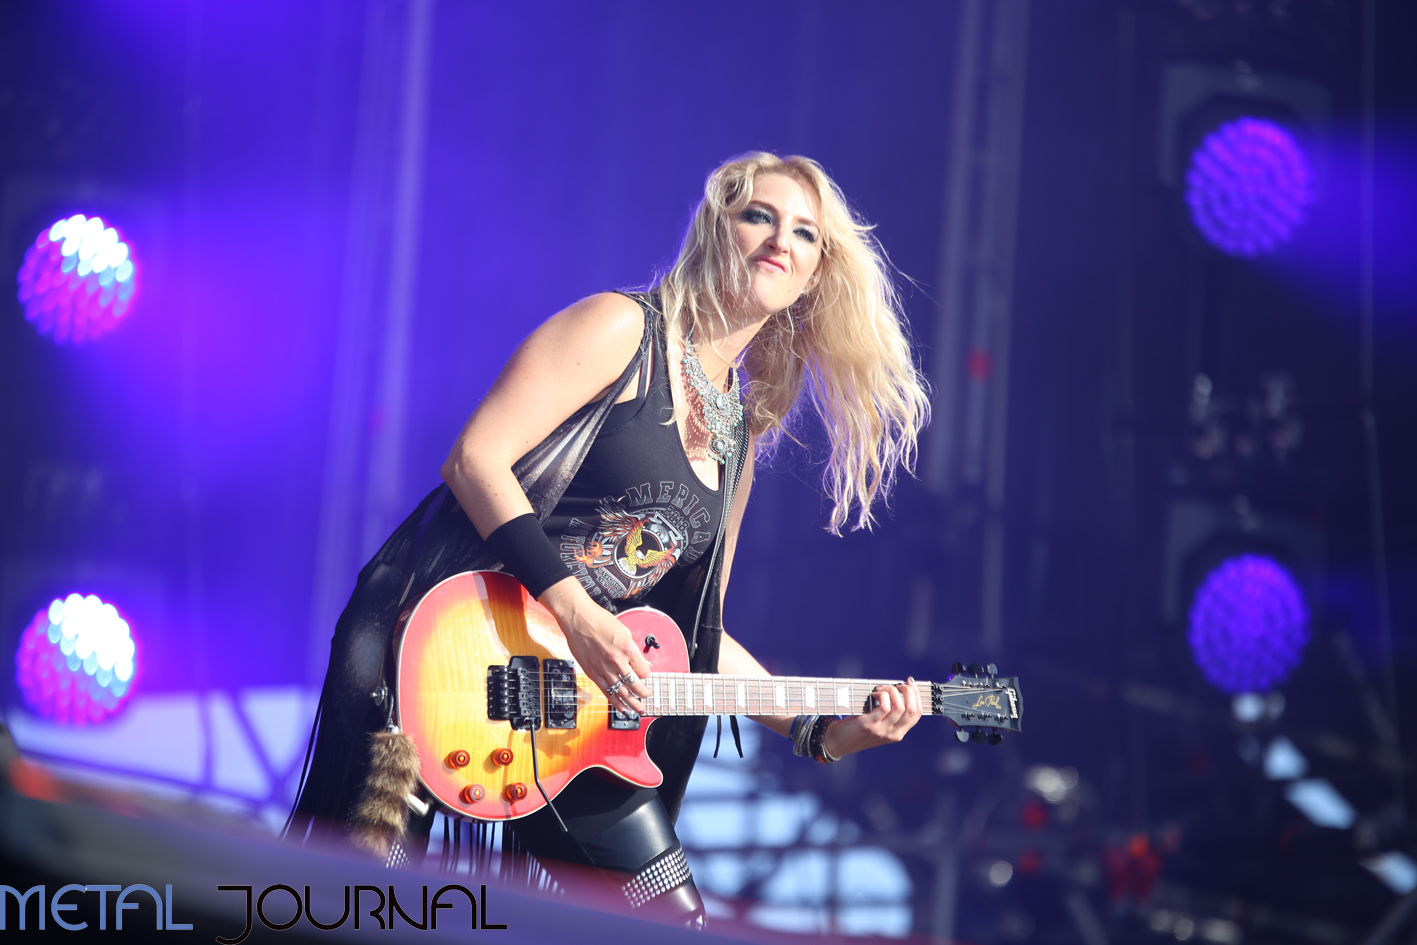 vixen rock fest 18 - metal journal pic 4